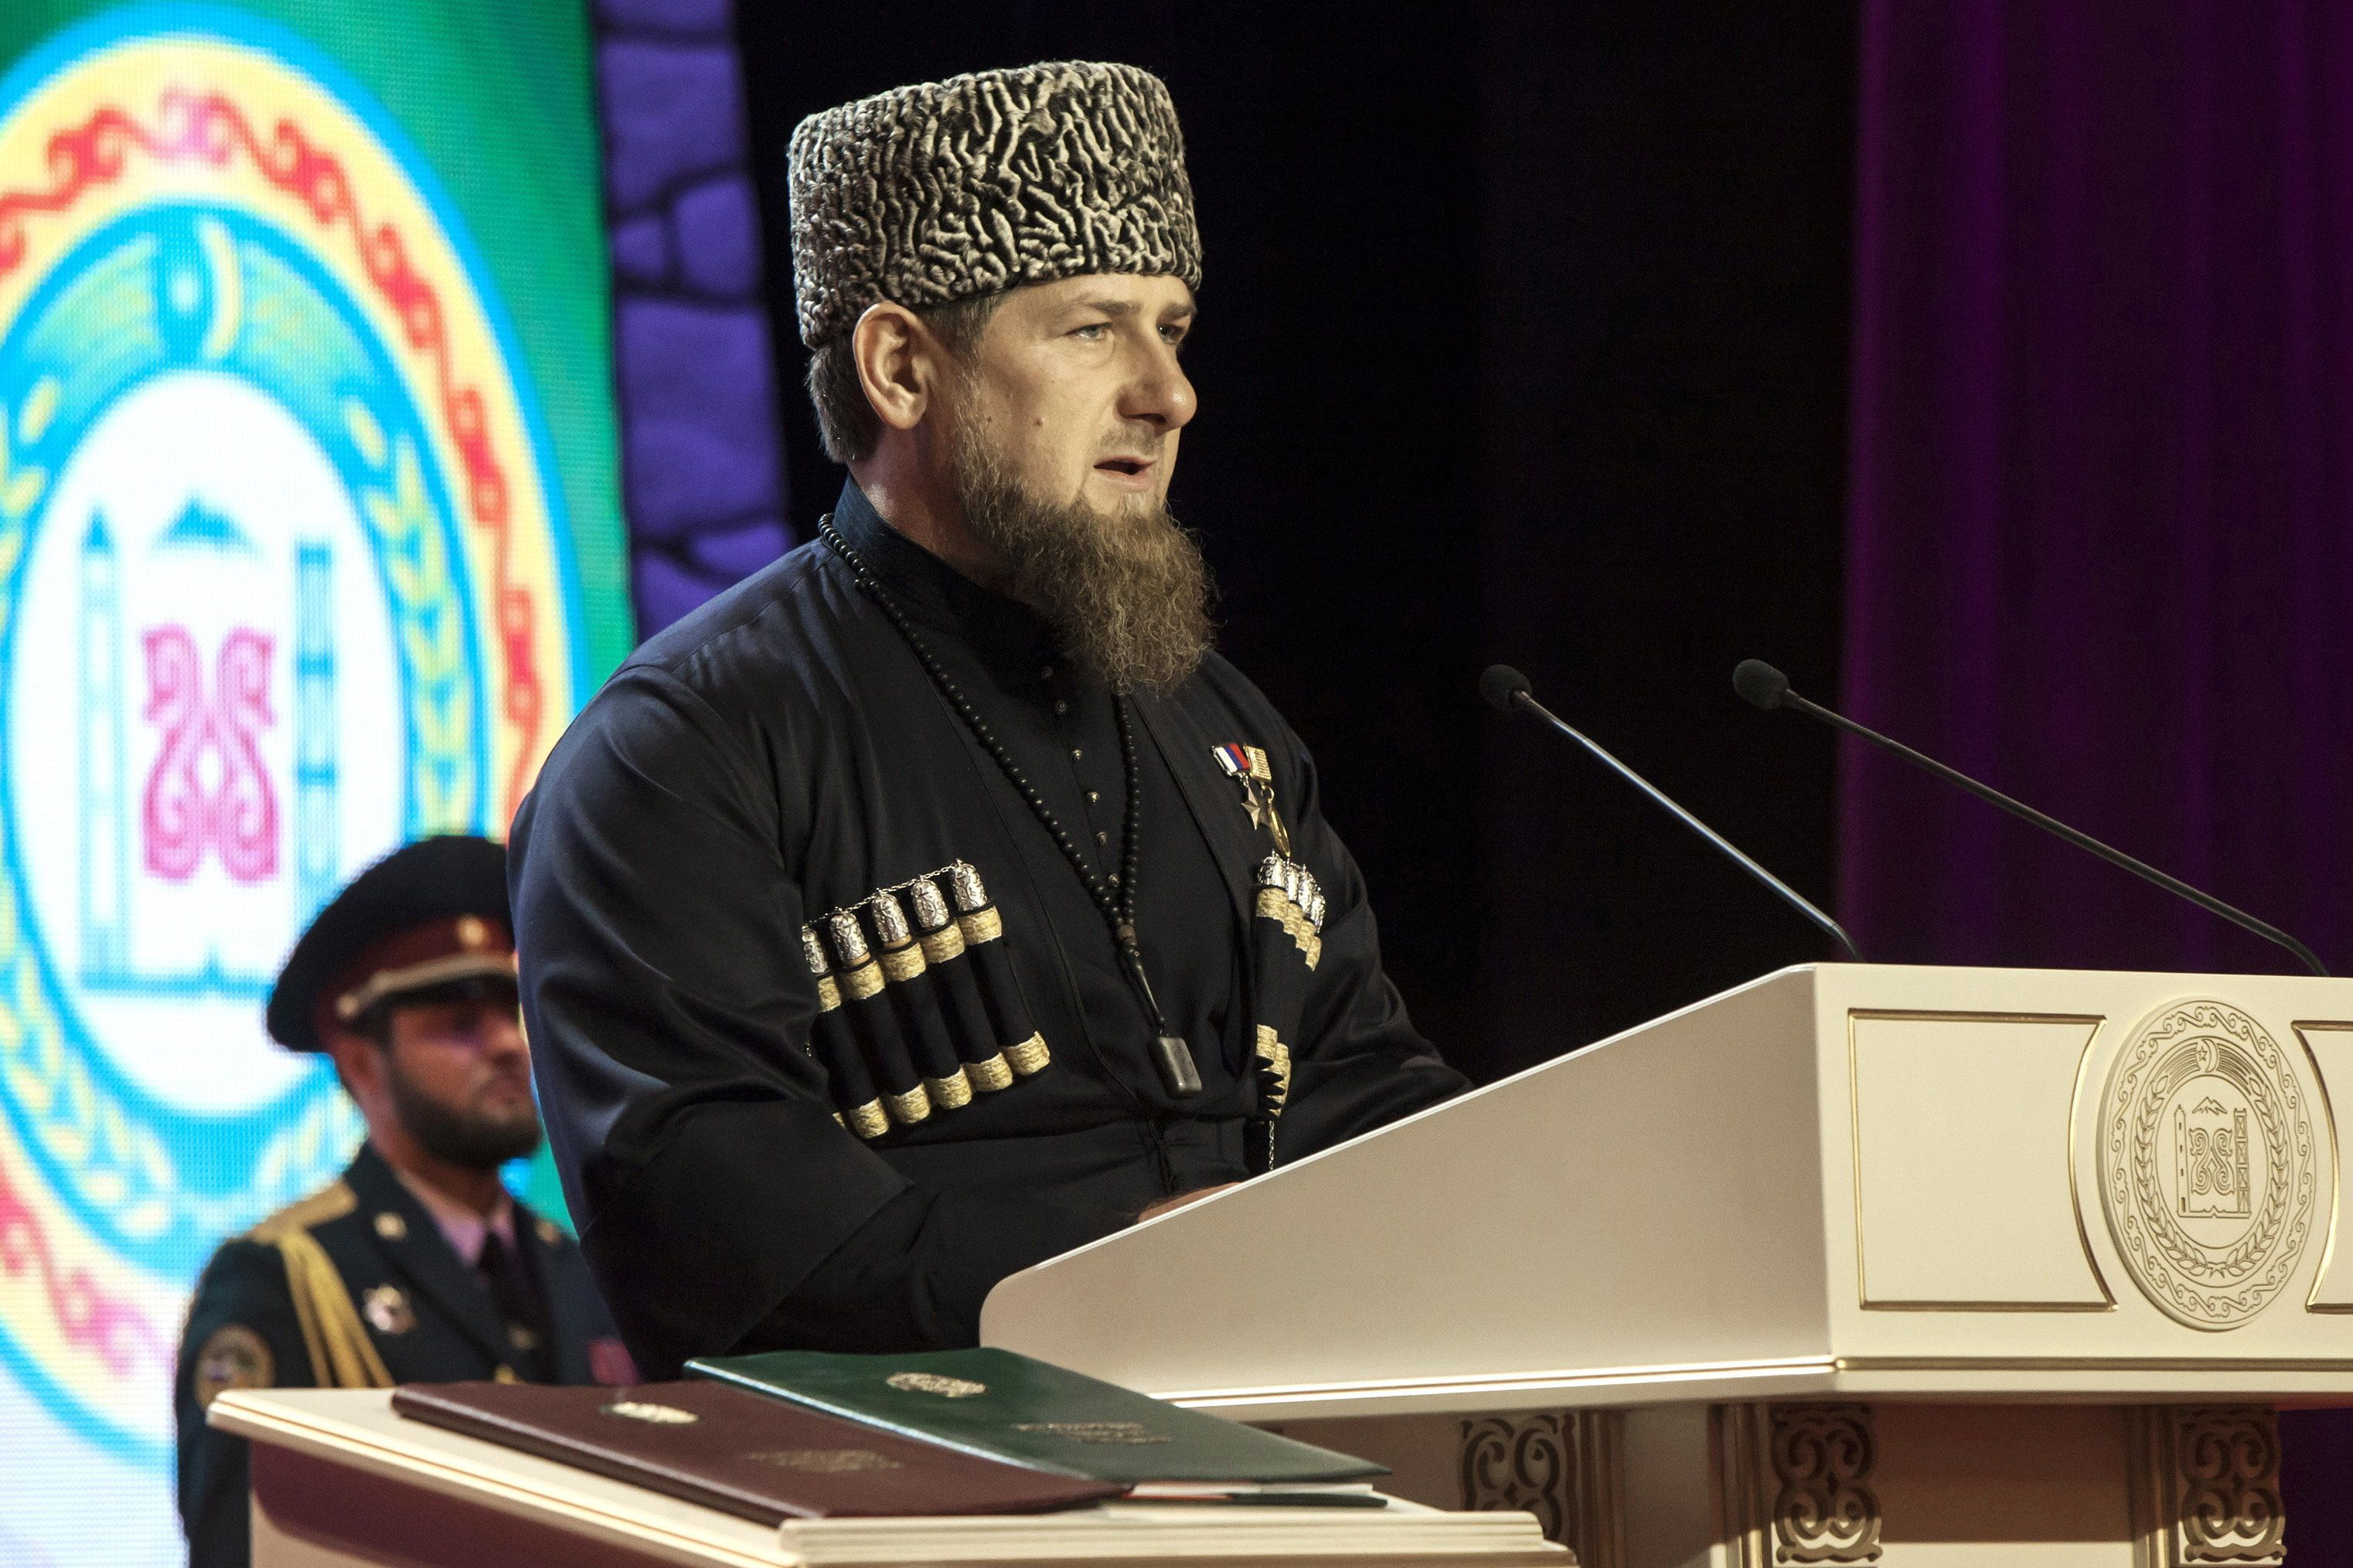 Ramzan Kadyrov, the head of the Chechen Republic, is seen being sworn into office in 2016 after being re-elected for a third